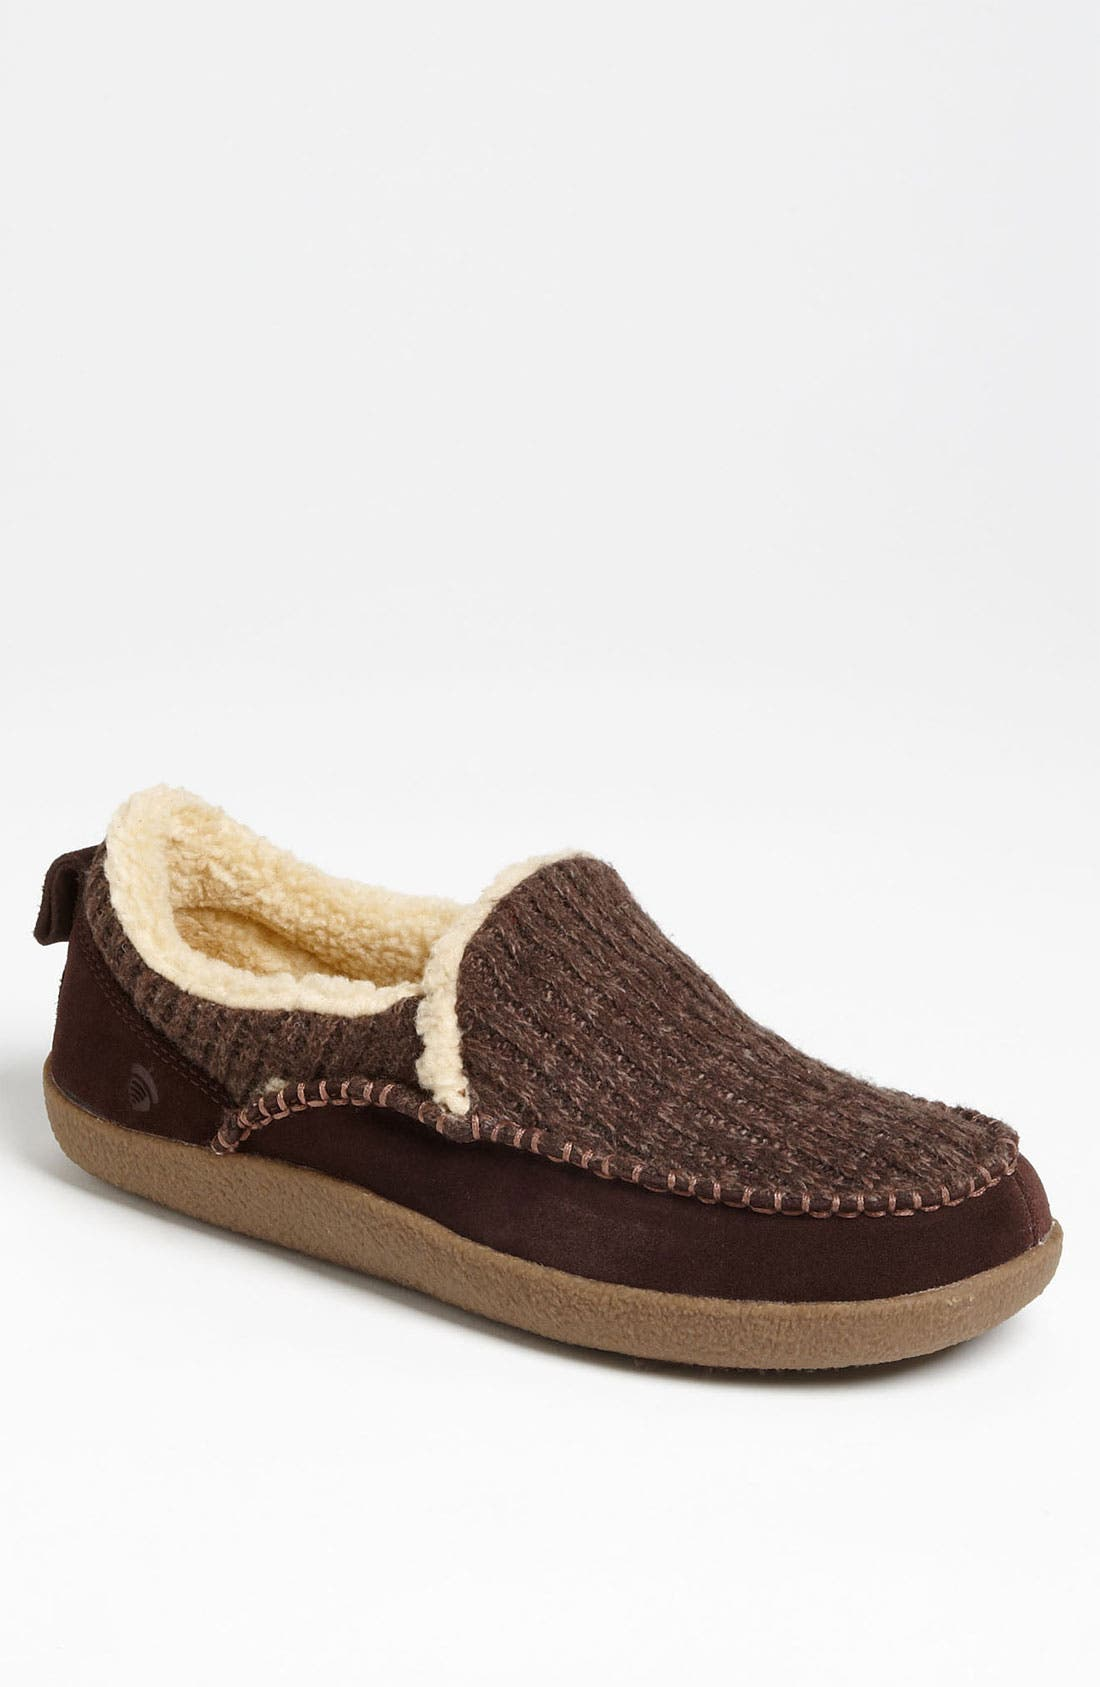 Alternate Image 1 Selected - Acorn 'Crosslander' Slipper (Men)